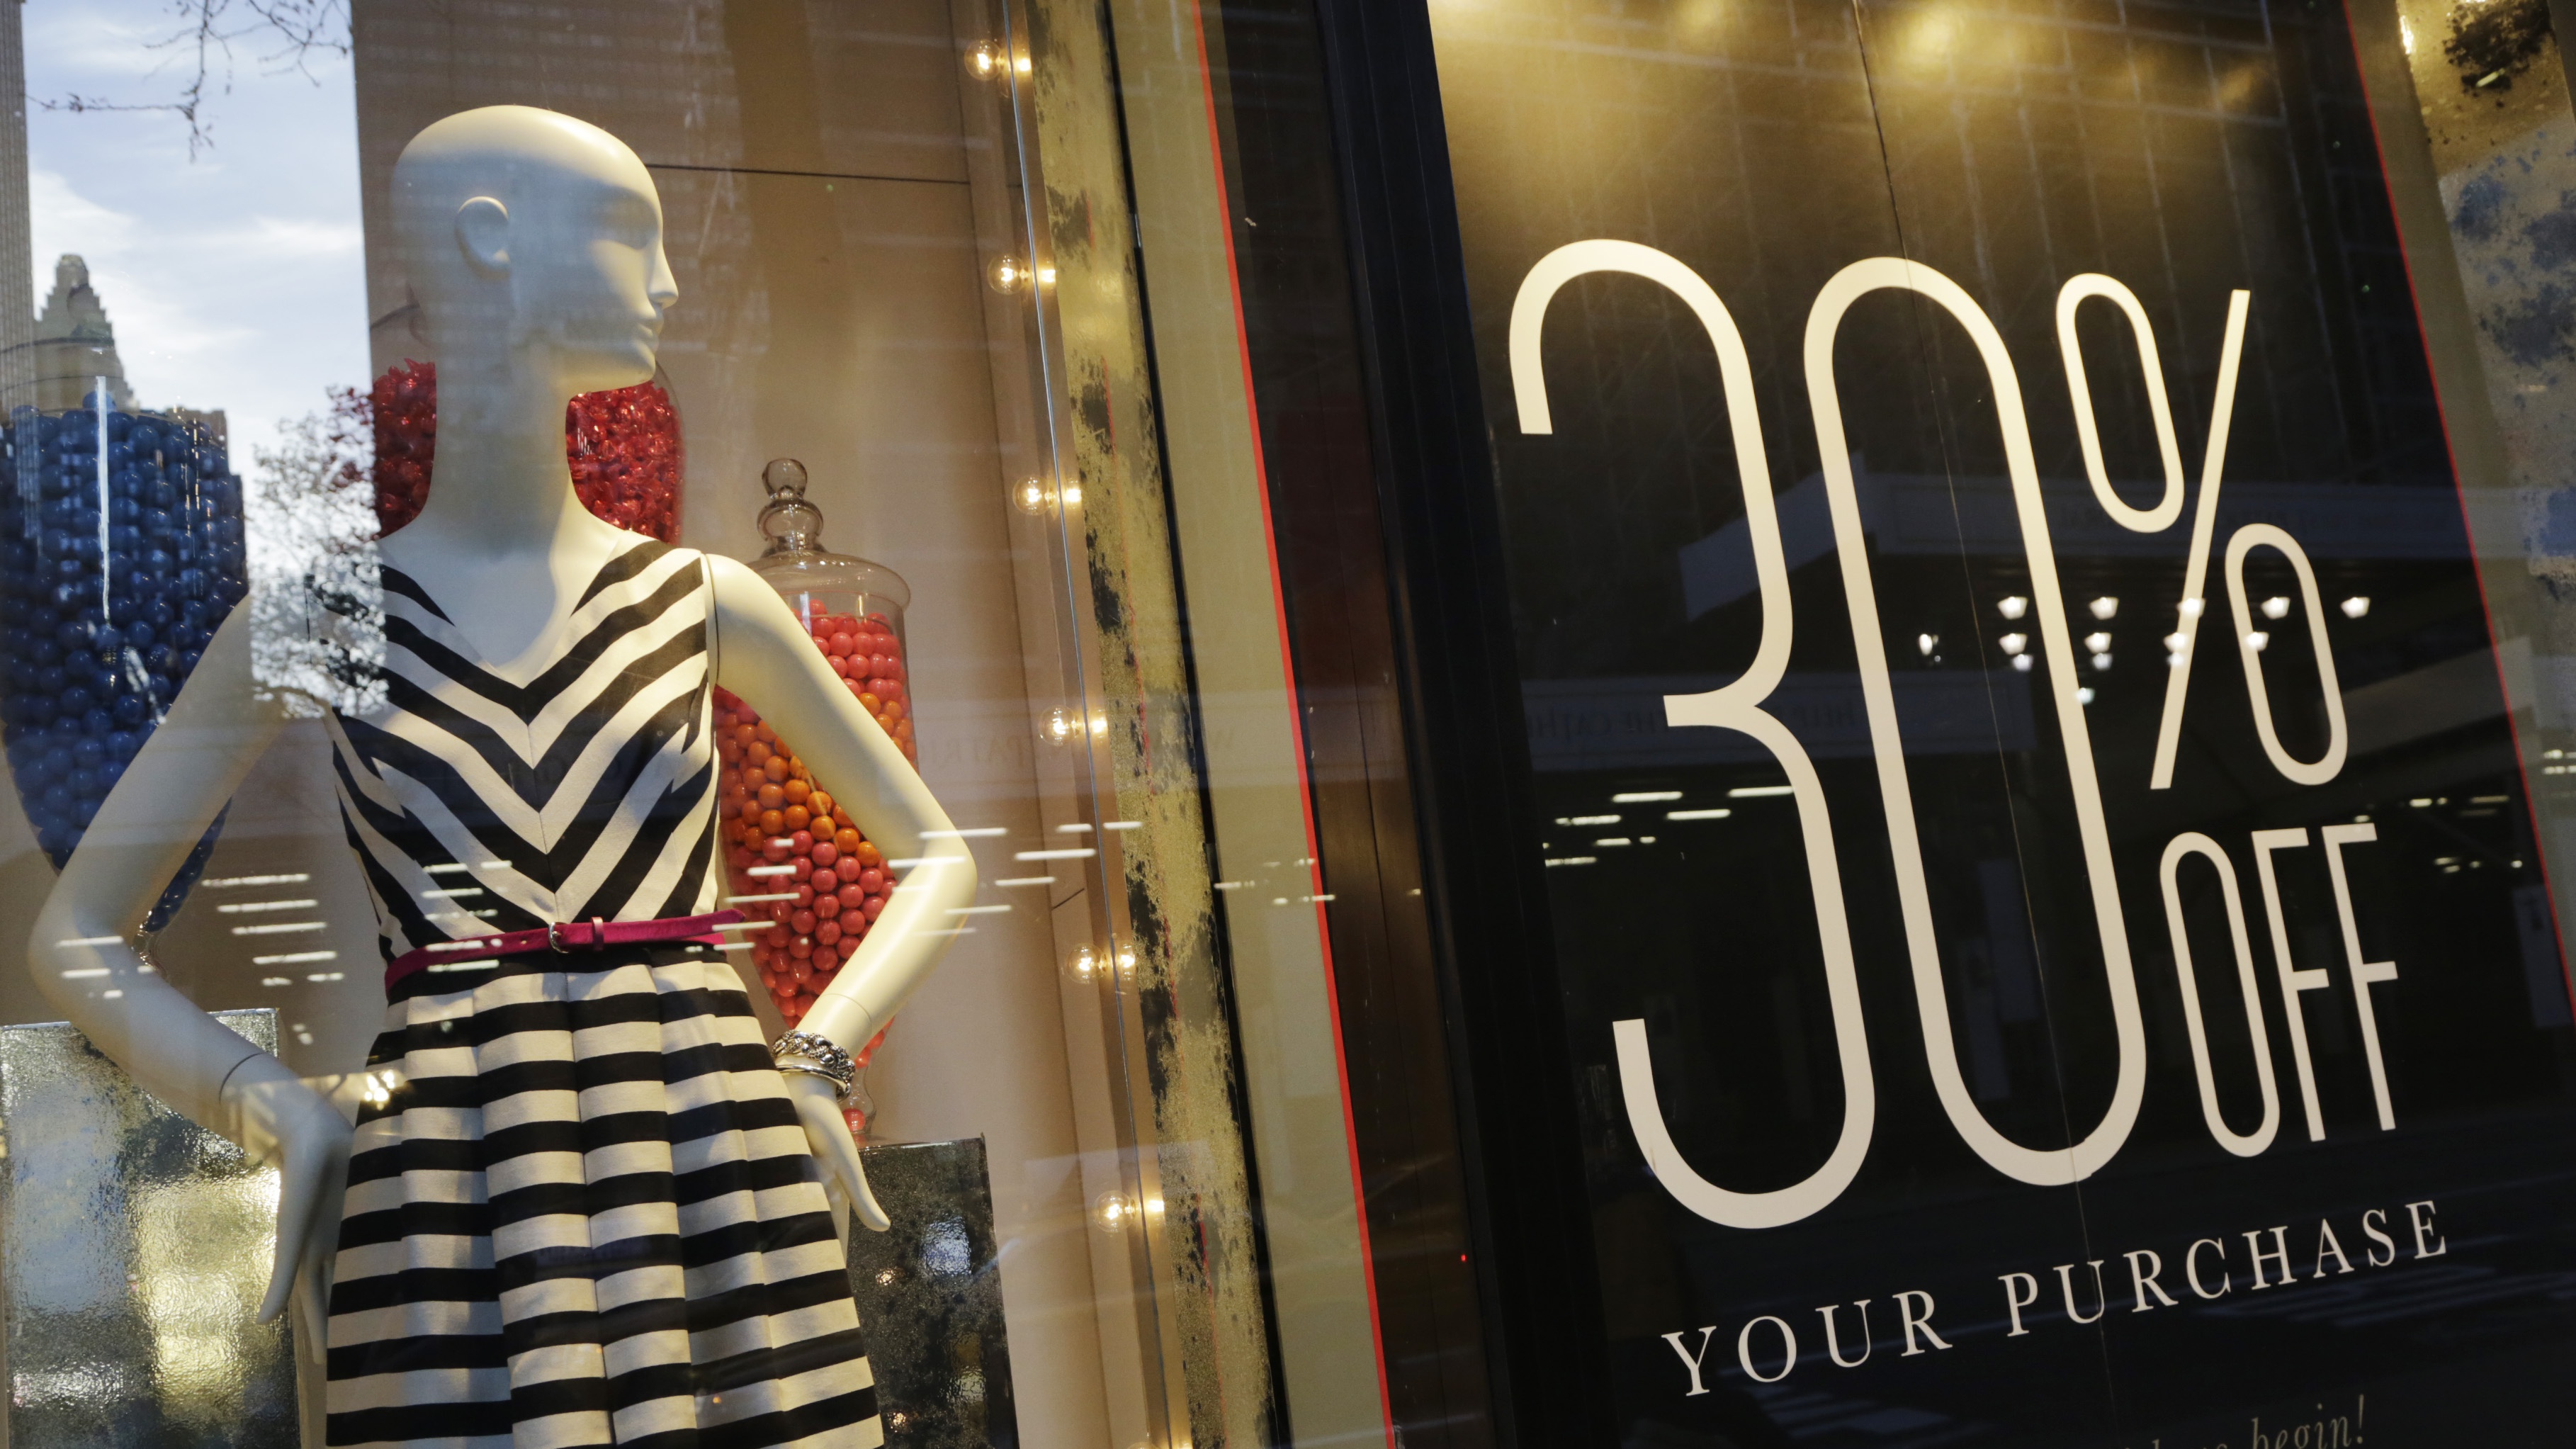 A 30 percent off sign is displayed in a Banana Republic store, Wednesday, Nov. 20, 2013 in New York.